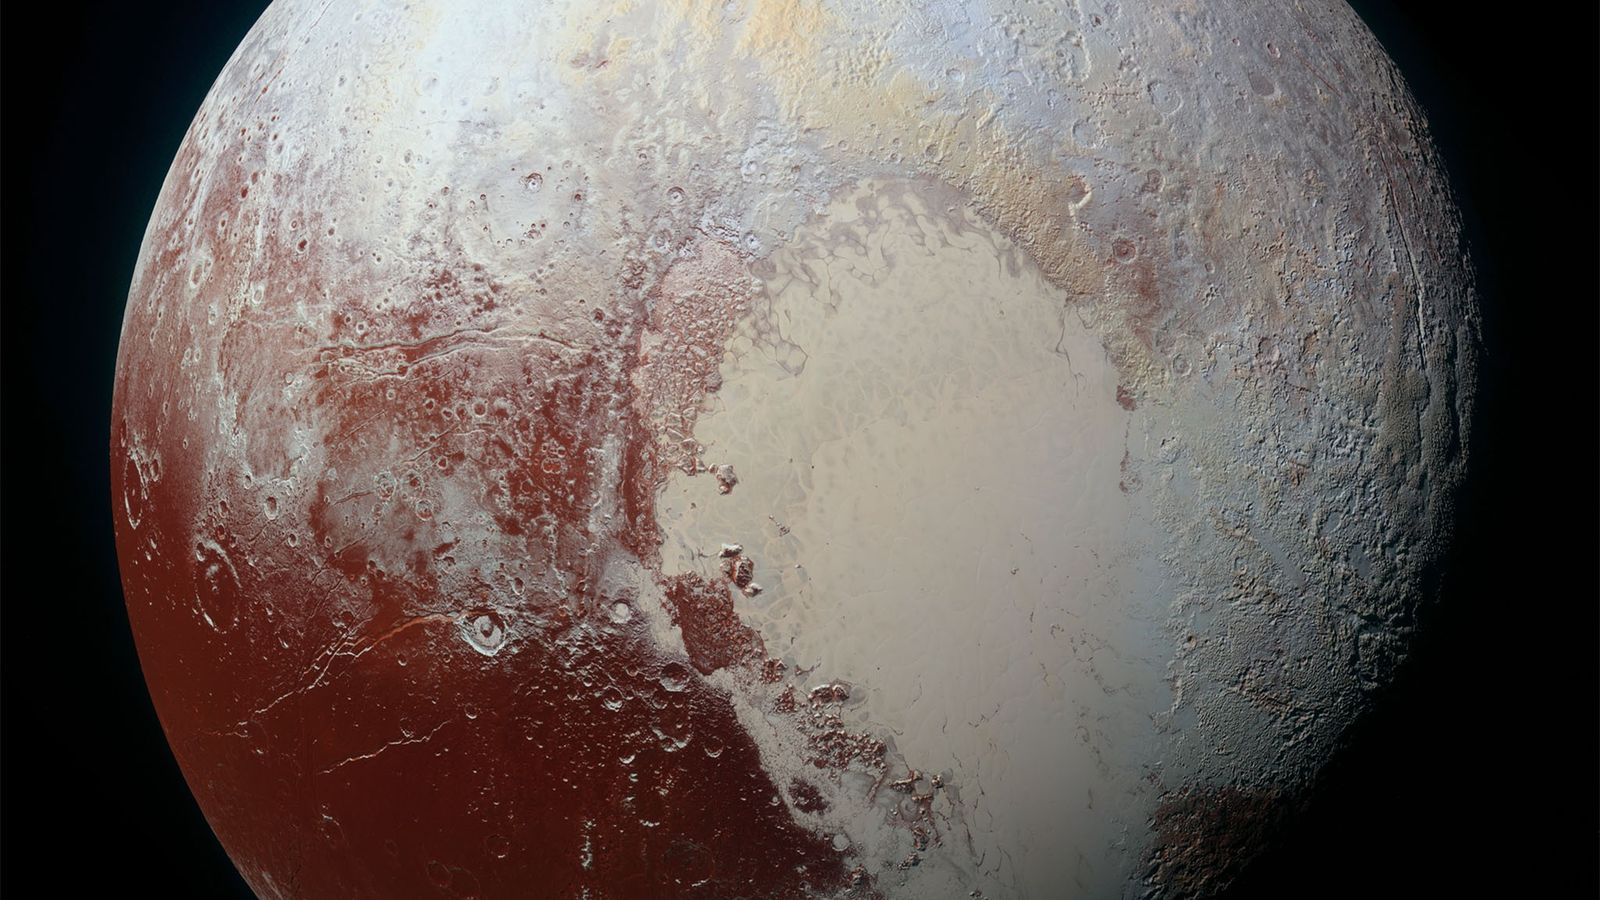 NASA's New Horizons spacecraft captured this high-resolution, enhanced-color view of Pluto on July 14, 2015.